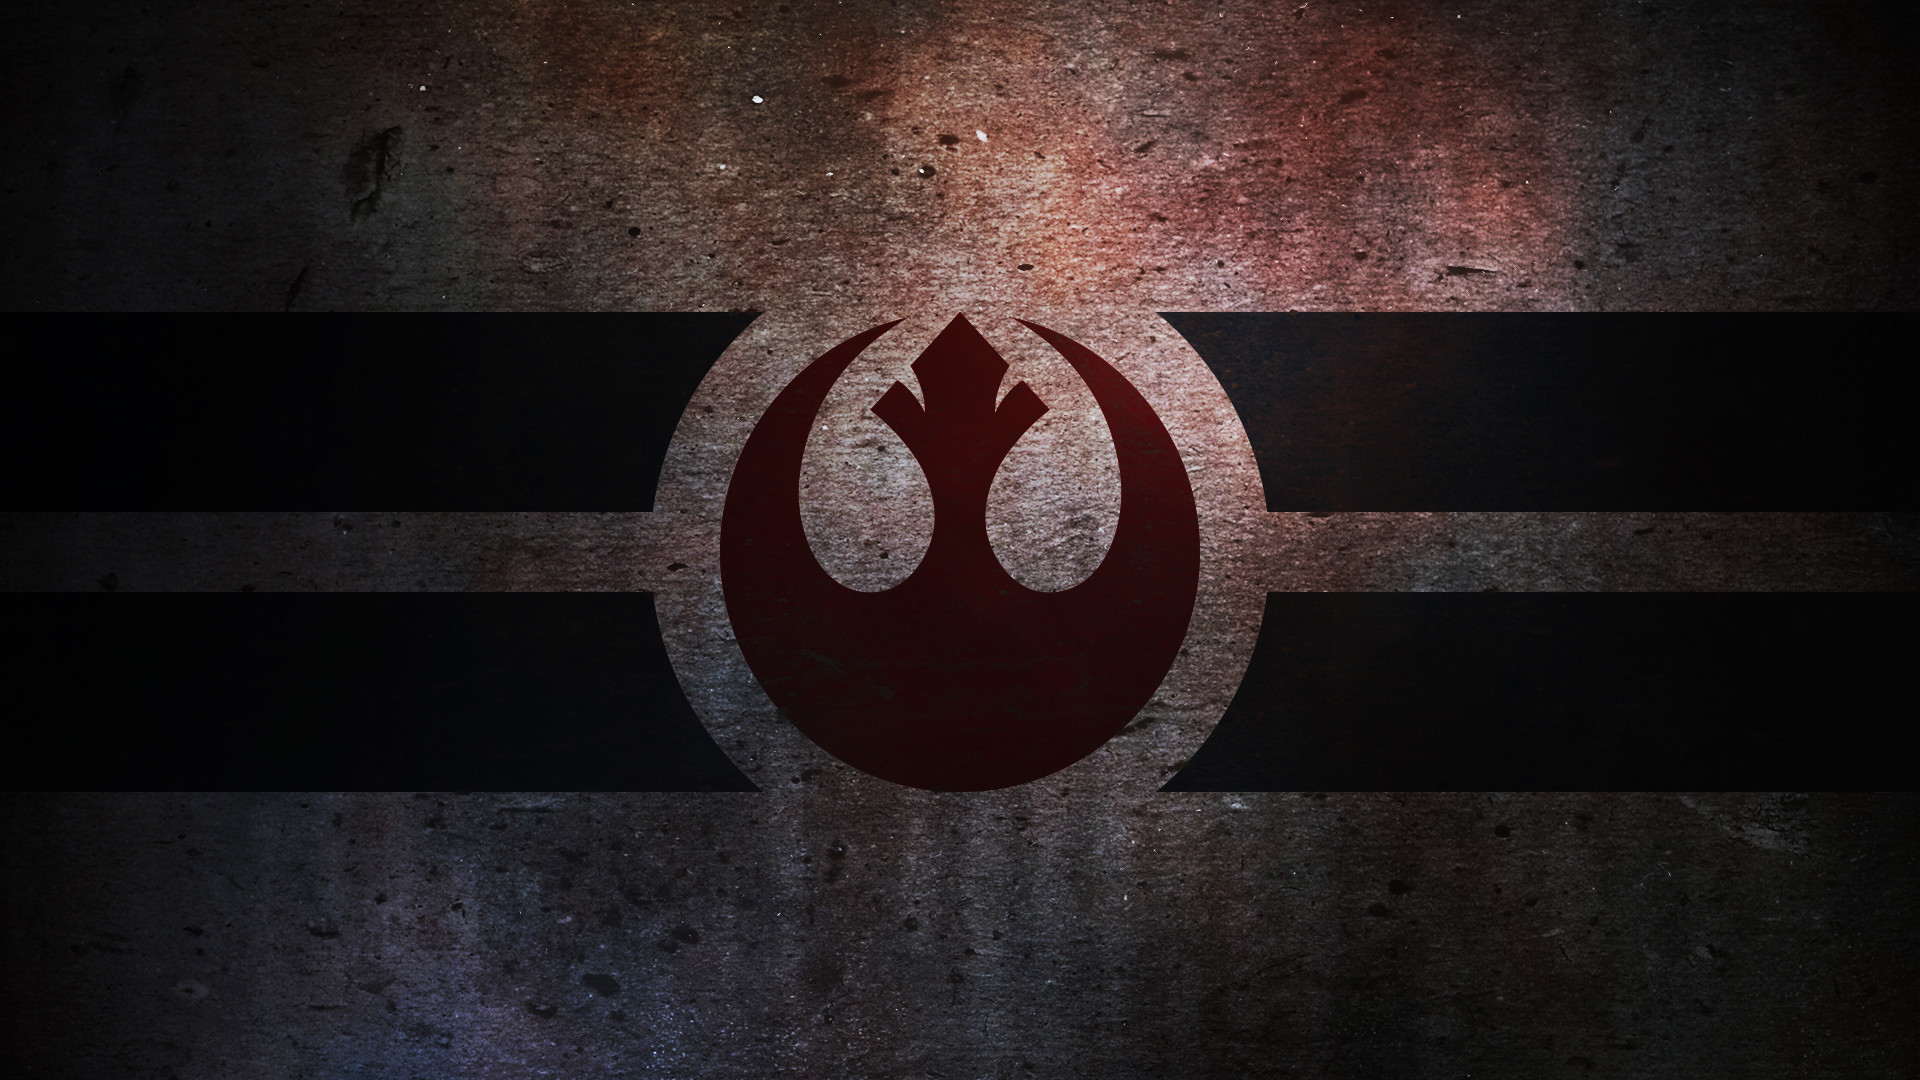 Jedi Logo Wallpapers Hd Wallpaper Collections 4kwallpaper Wiki